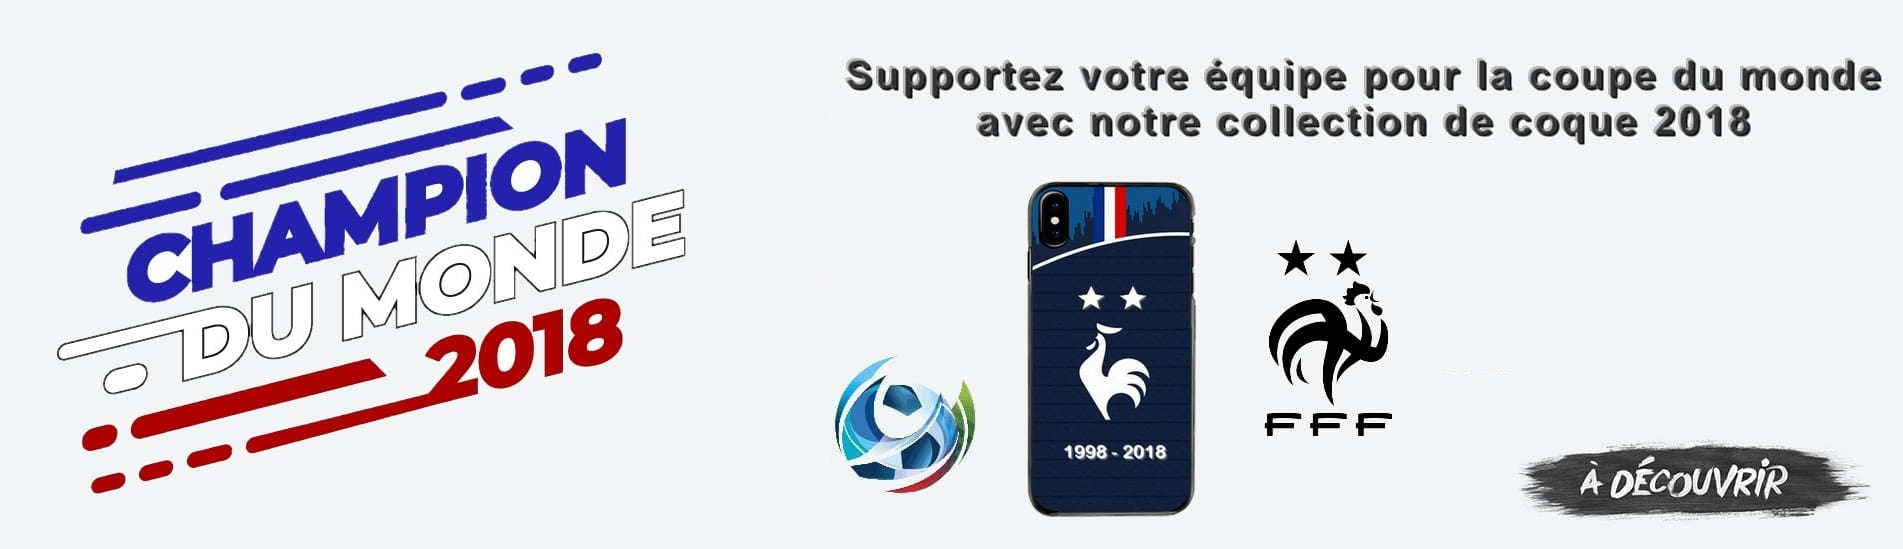 New Cell Phone Coque Low Price Ba3Ea 7F87A concernant Piscine Coque Low Cost